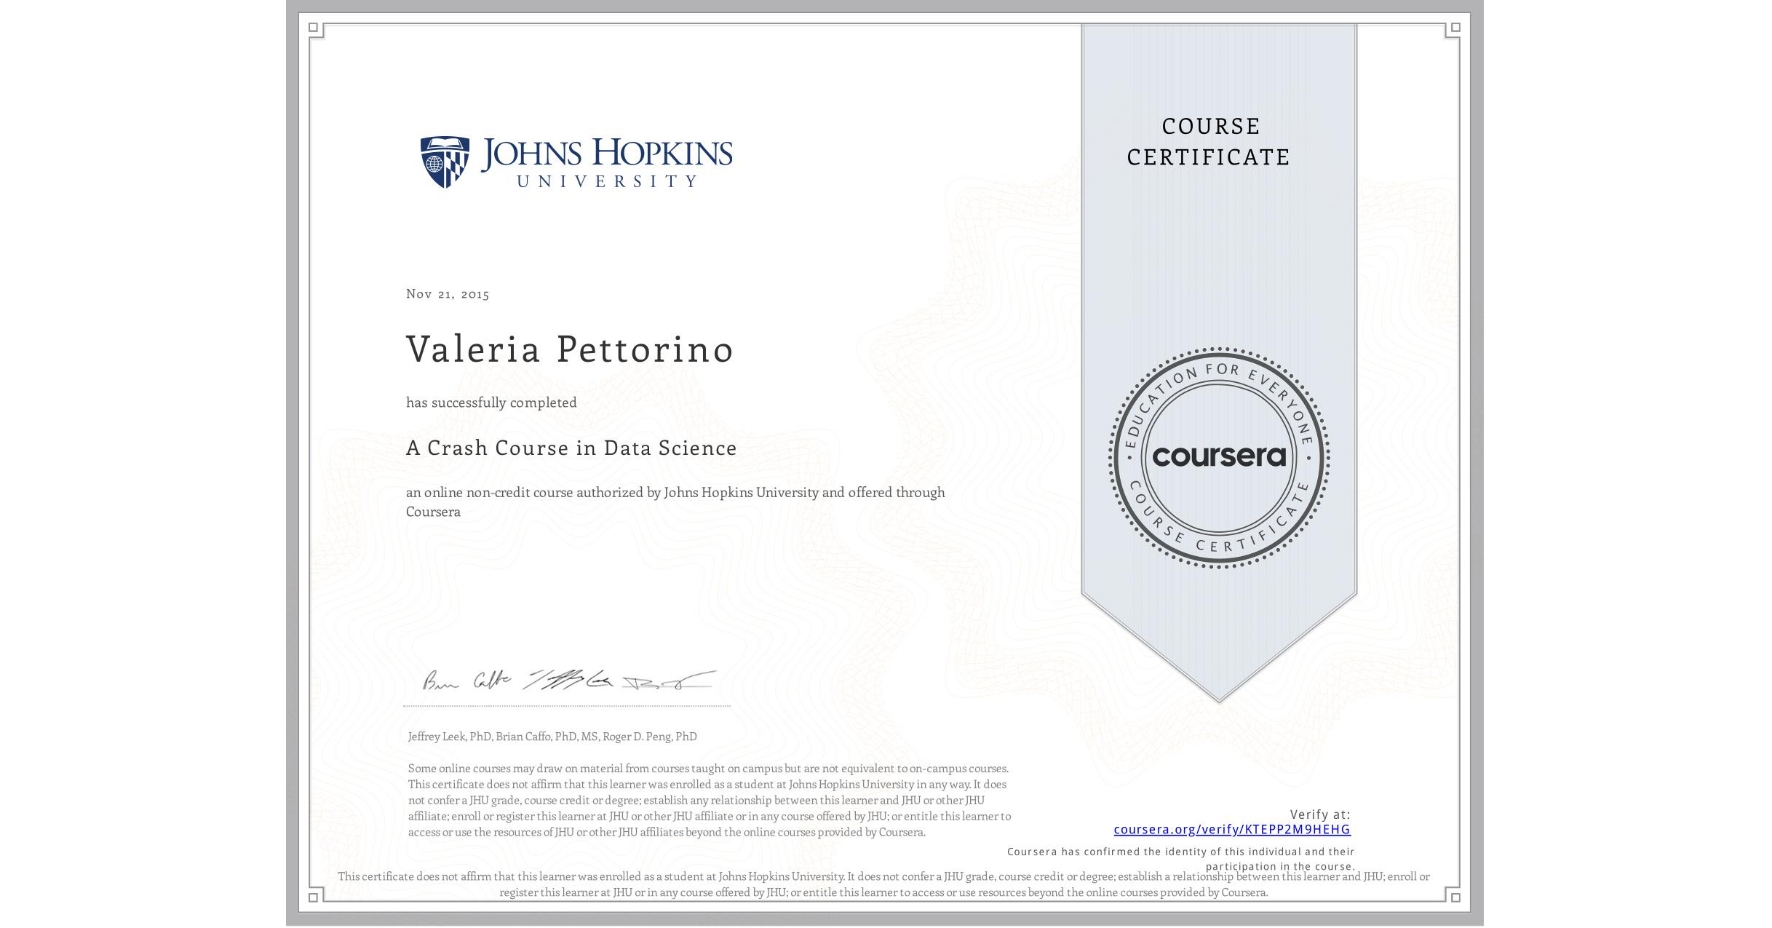 View certificate for Valeria Pettorino, A Crash Course in Data Science, an online non-credit course authorized by Johns Hopkins University and offered through Coursera